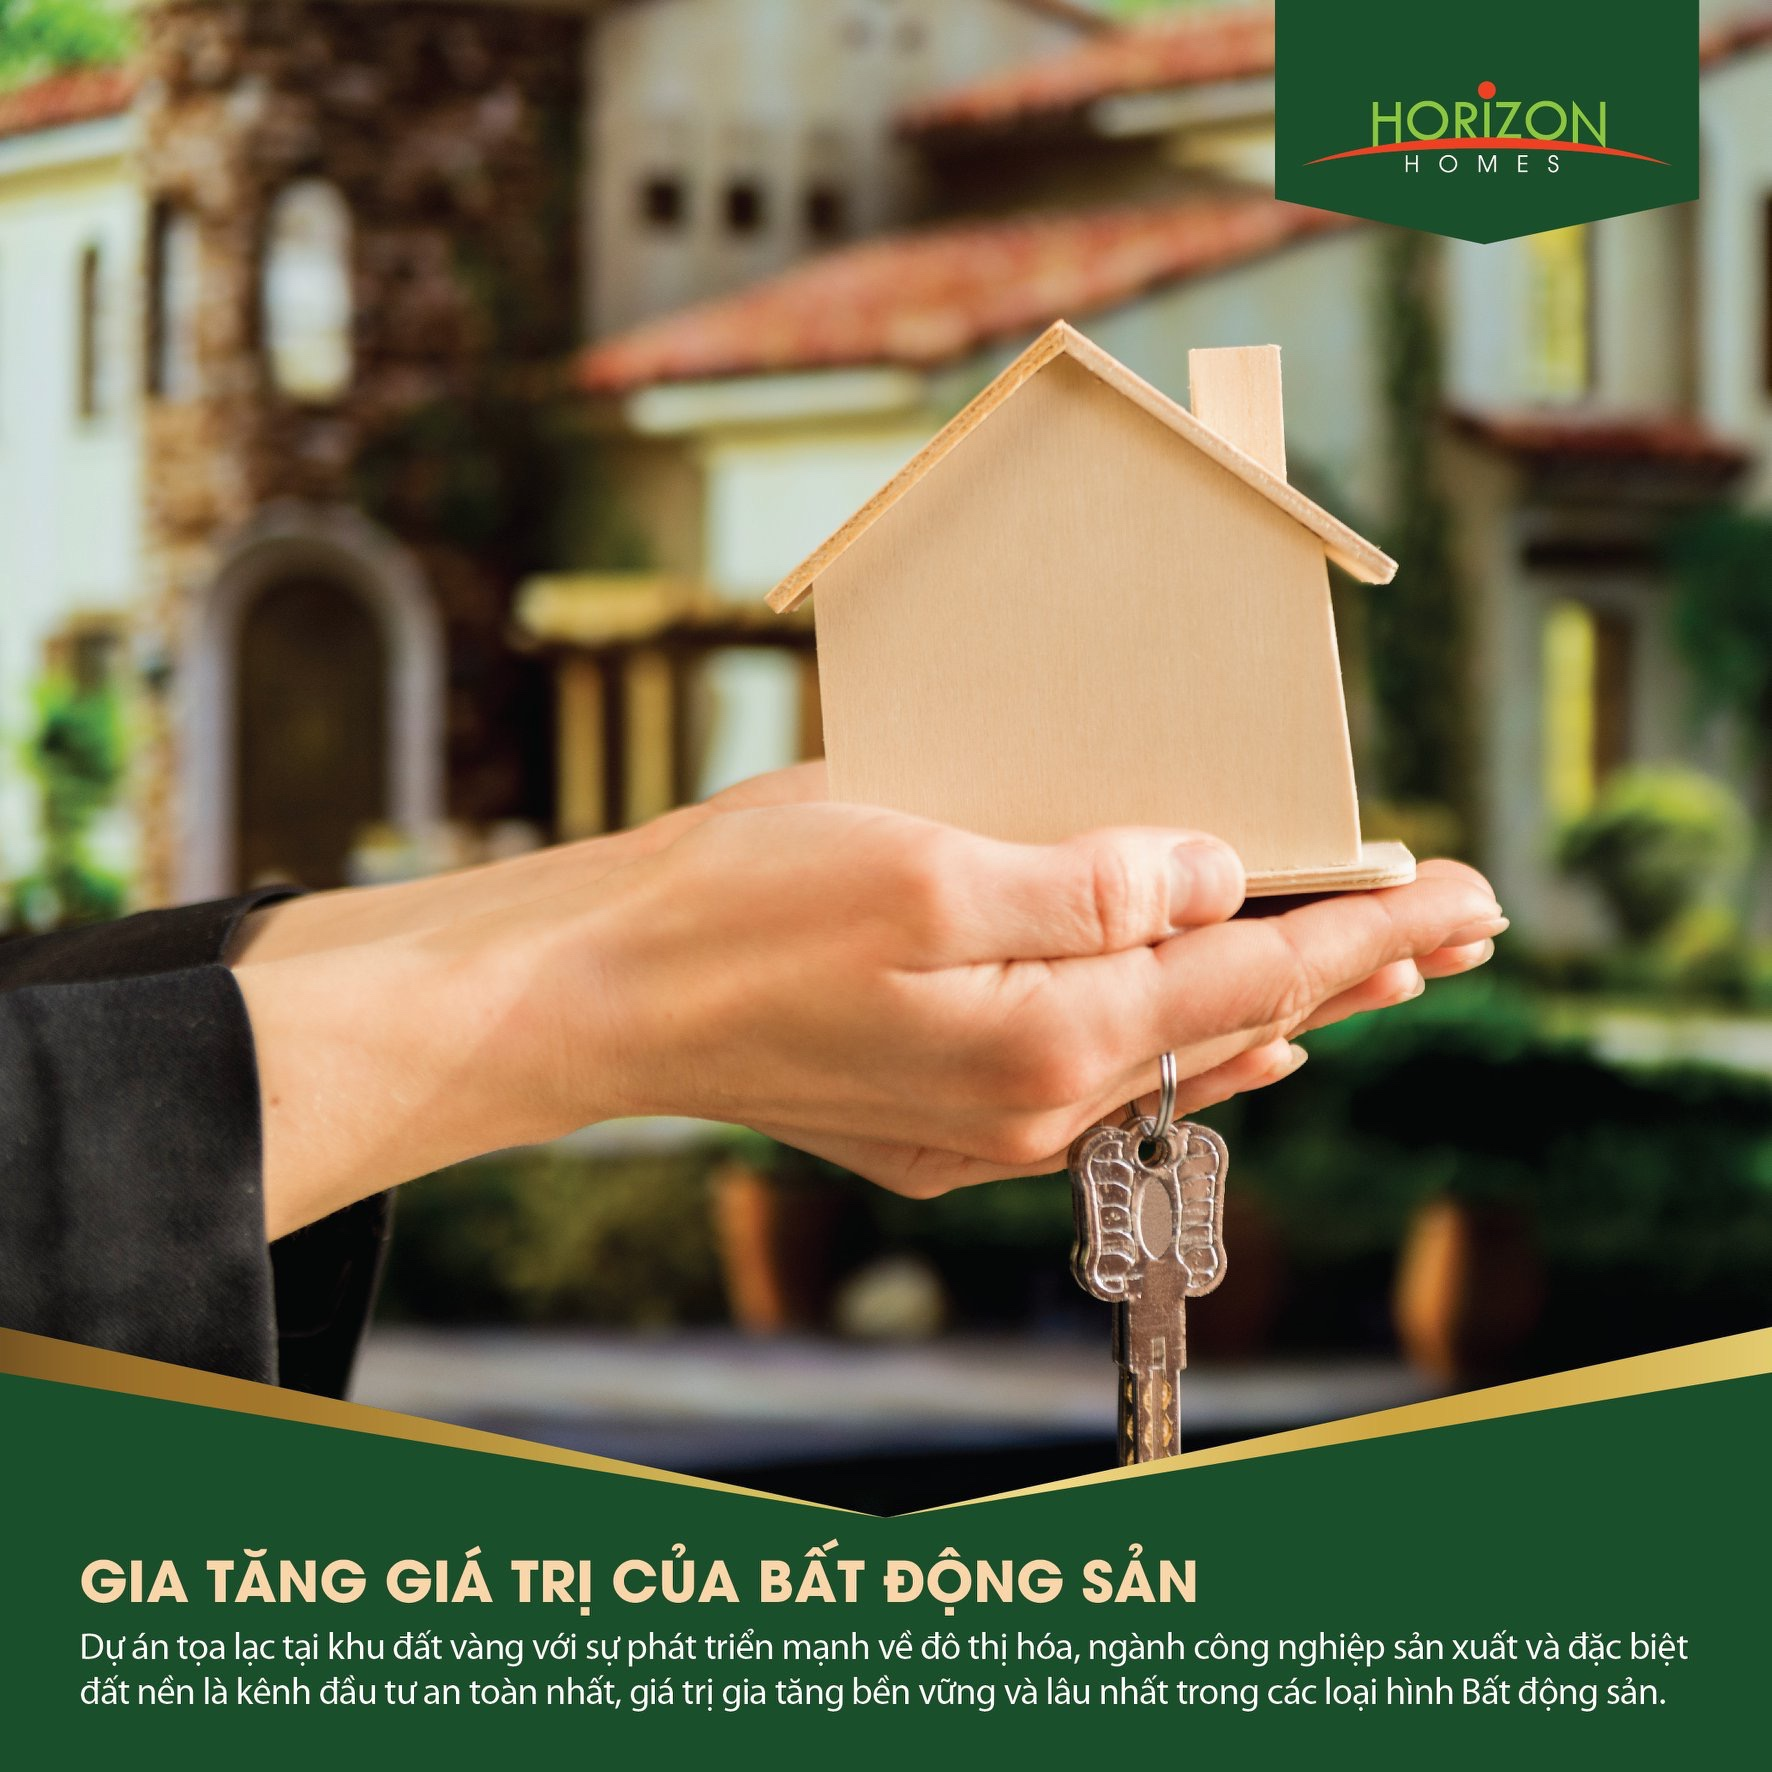 Dự án Horizon Homes